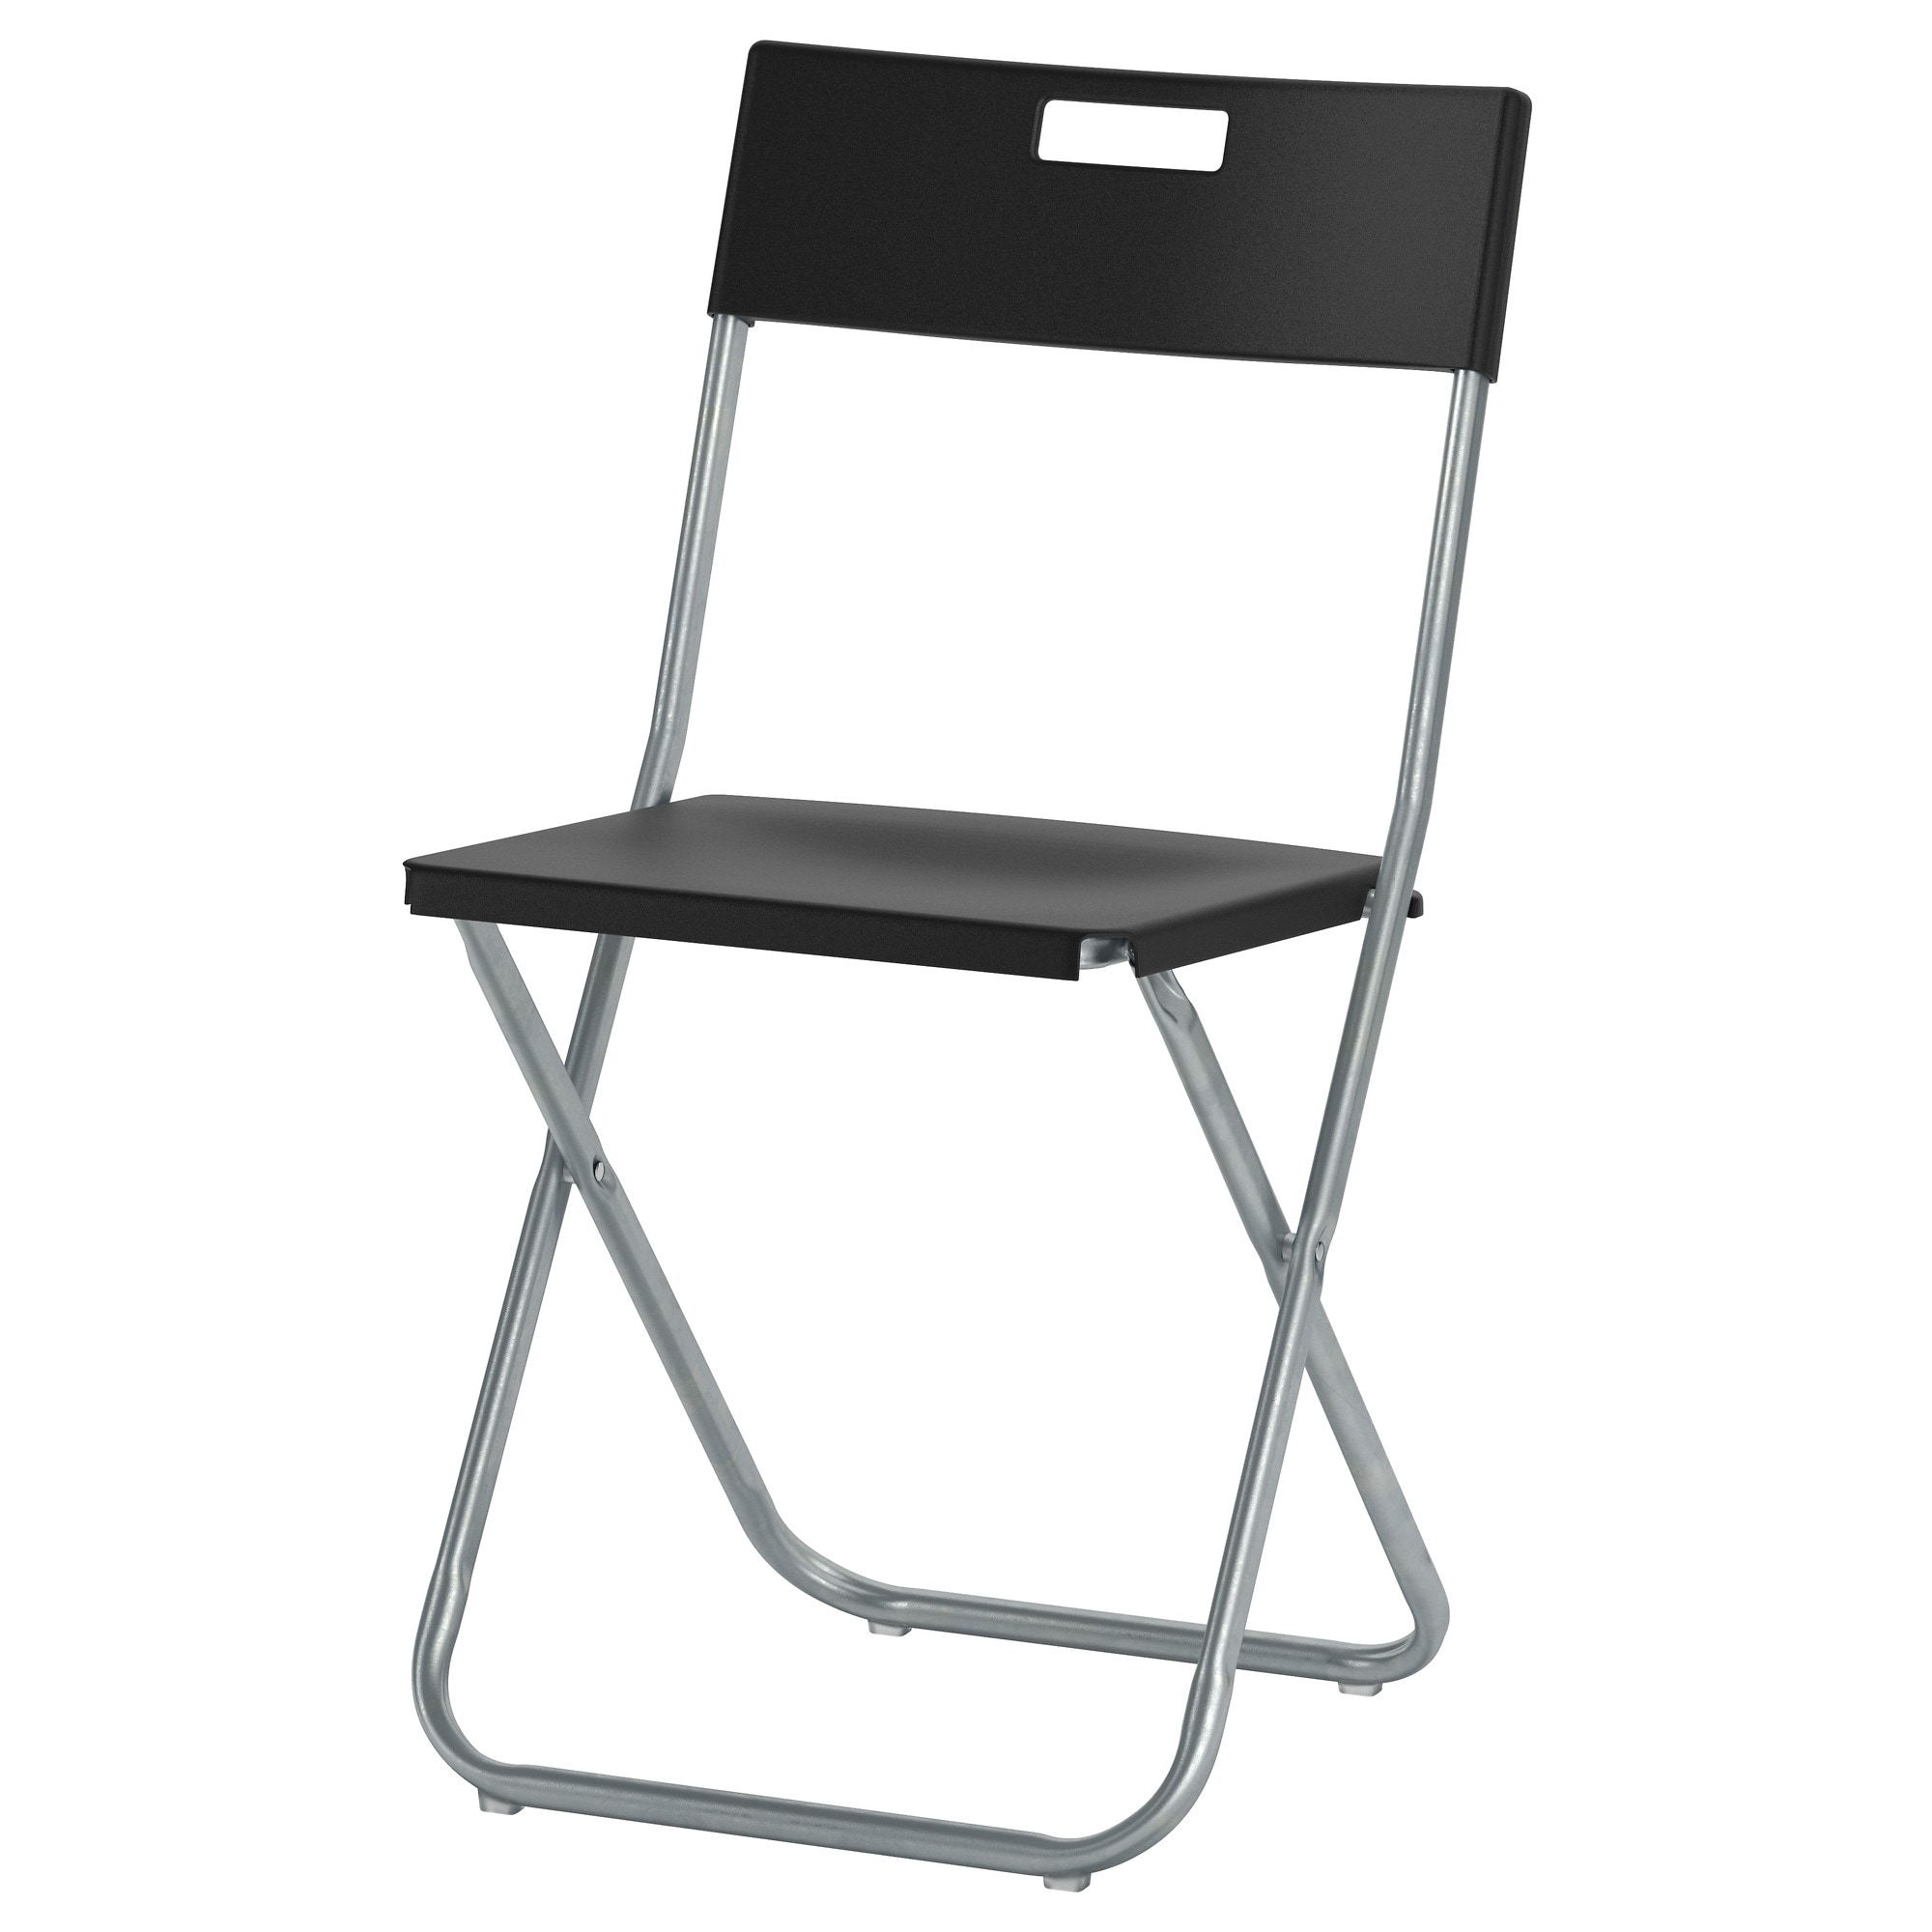 GUNDE Folding chair IKEA